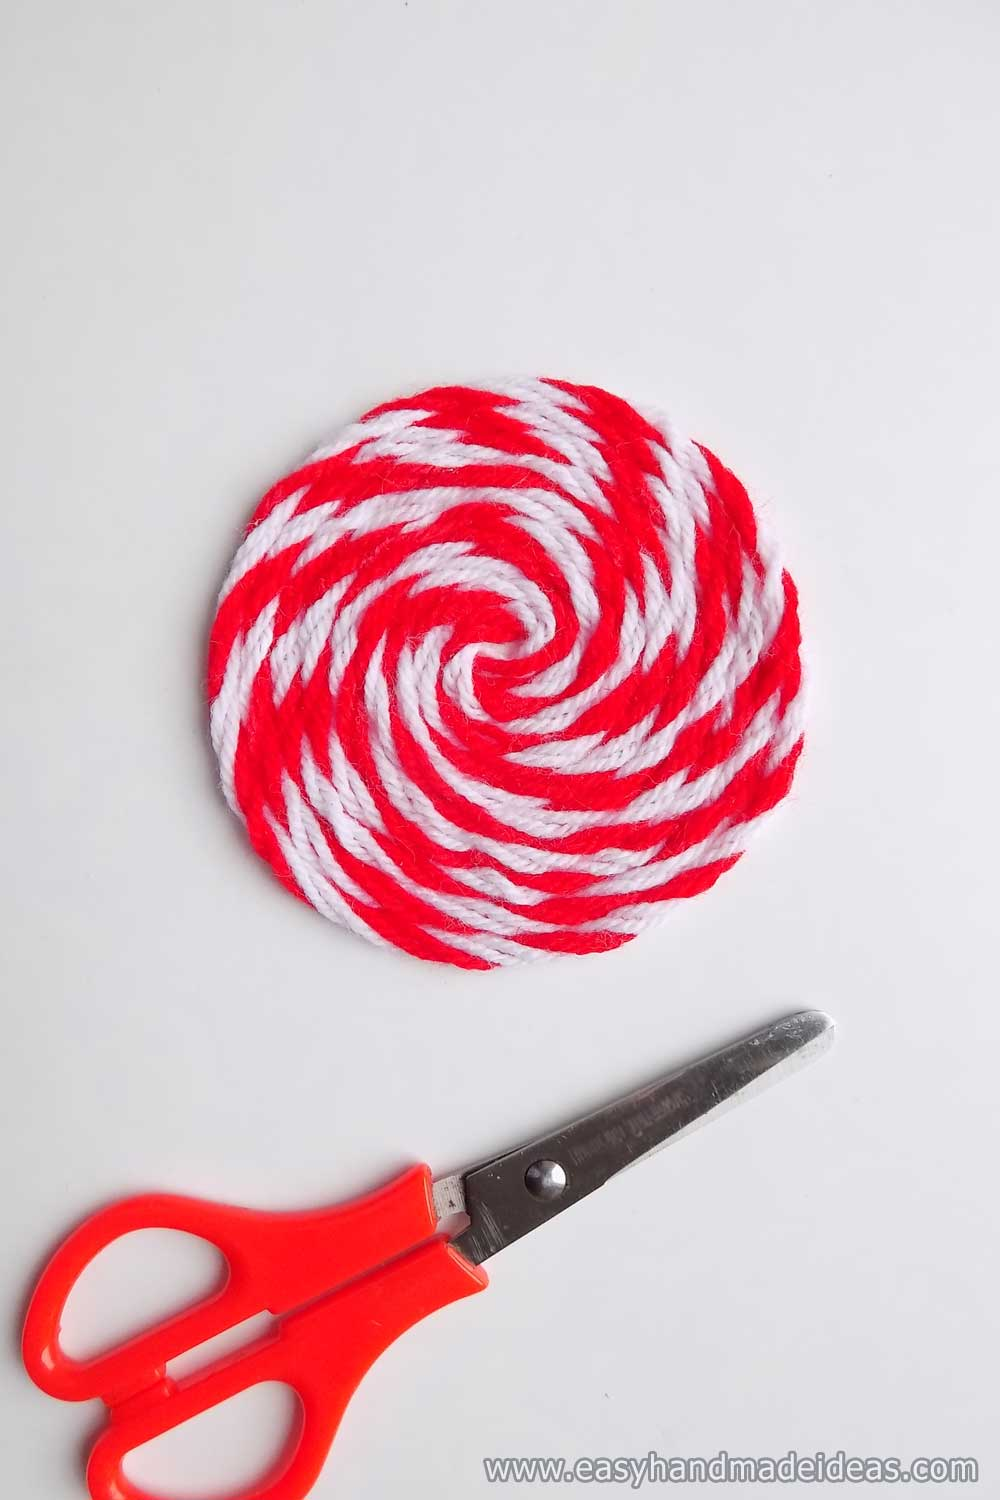 The Circle of Yarn on the Cut Paper